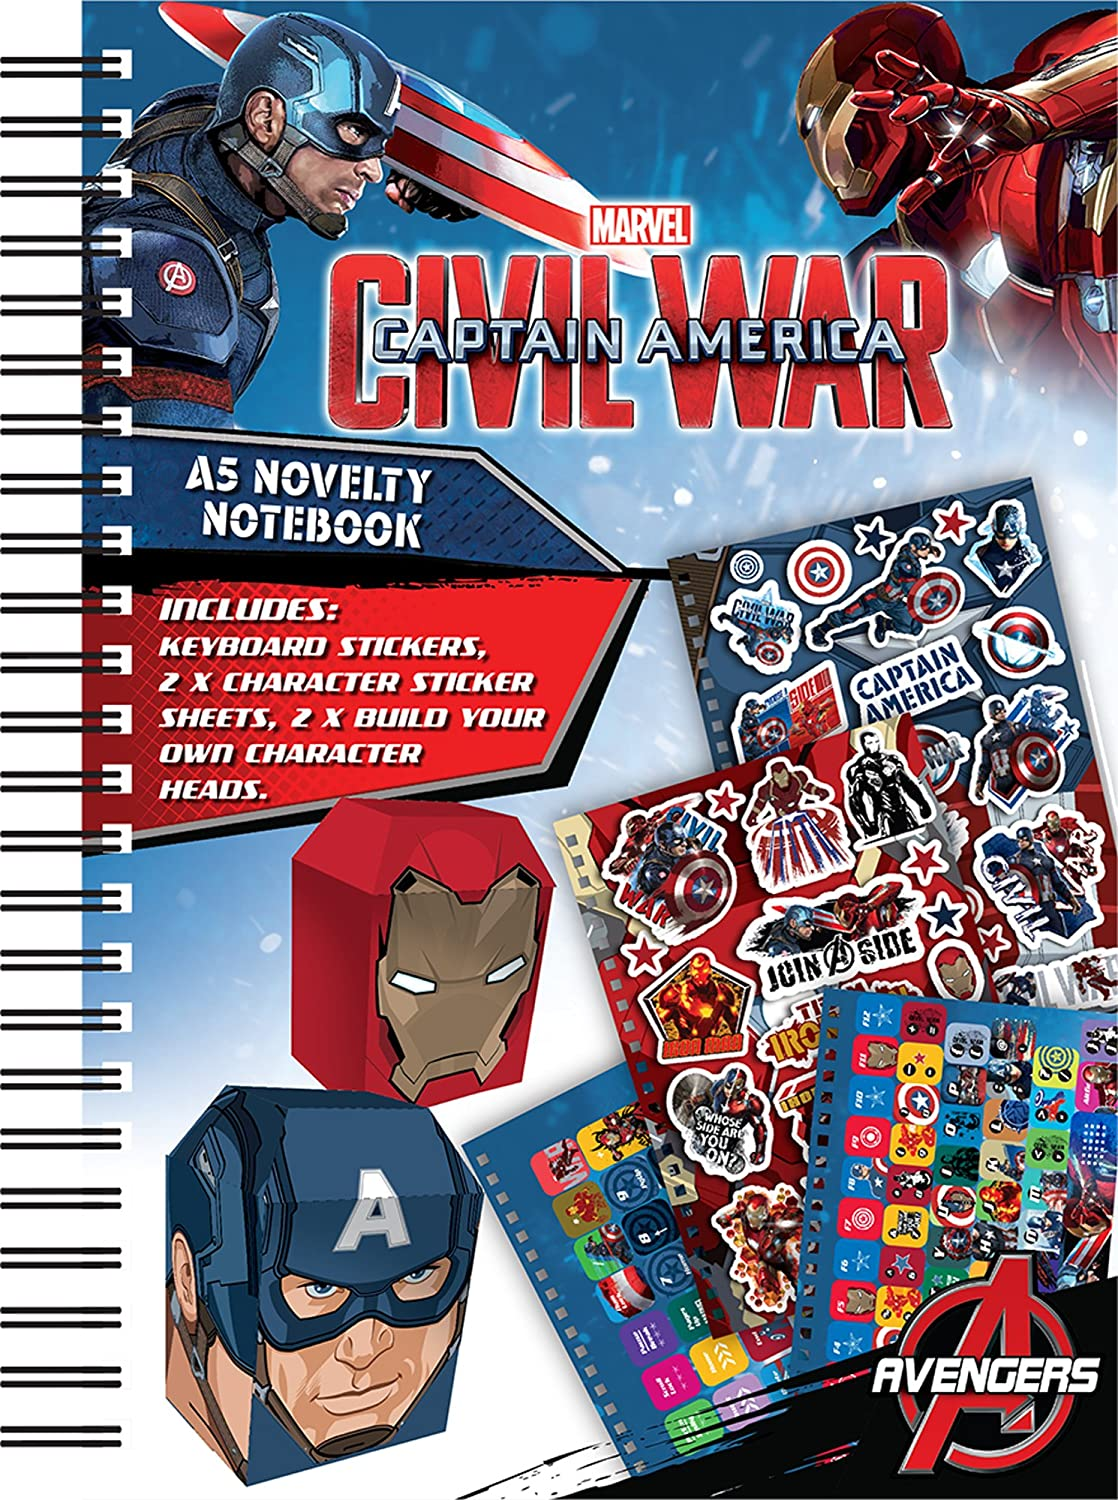 Anker Captain America A5 Novelty Notebook CANNB